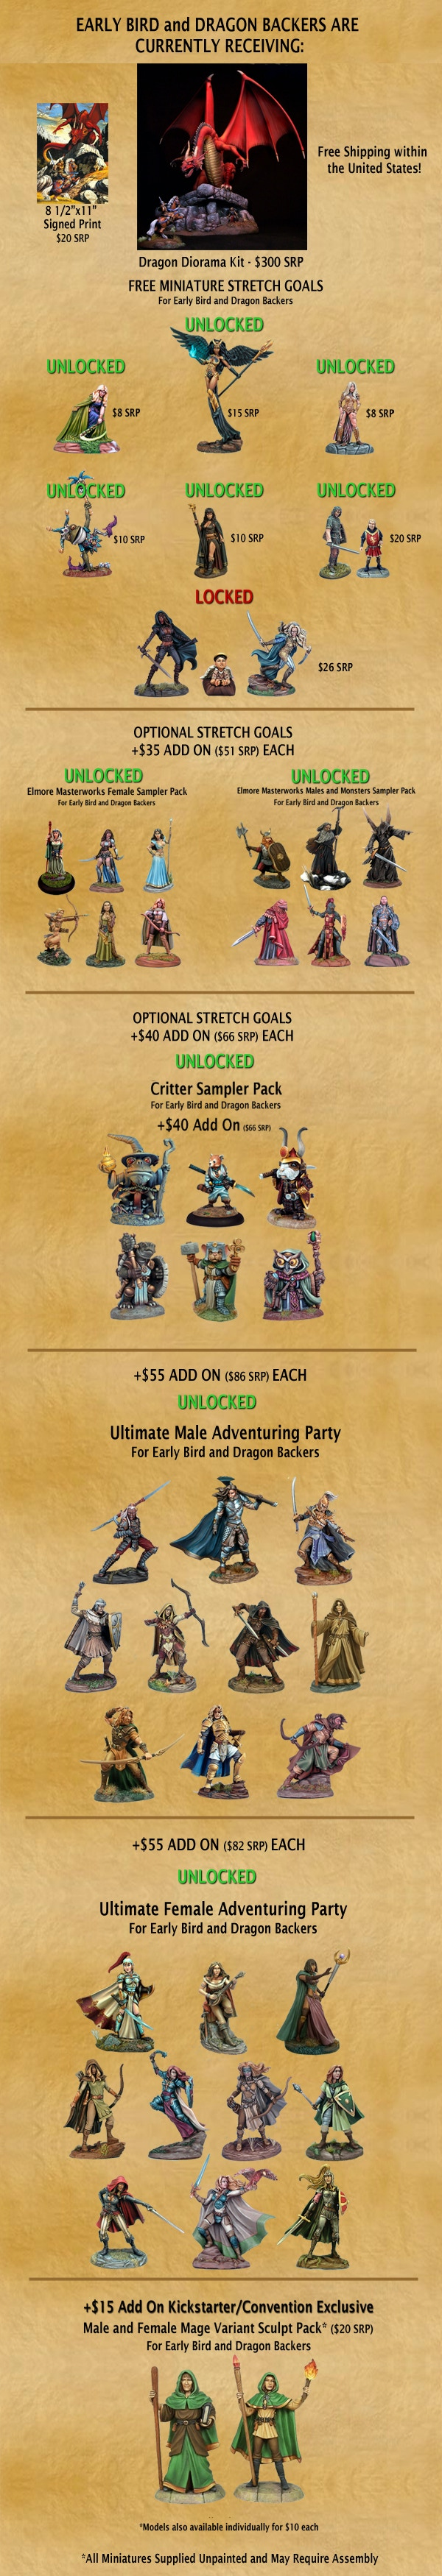 Above is a comprehensive graphic that showcases everything our Early Bird and Dragon Level Backers receive for FREE and also have access to in the form of optional add-ons. For more detailed information, please see our Updates section above.